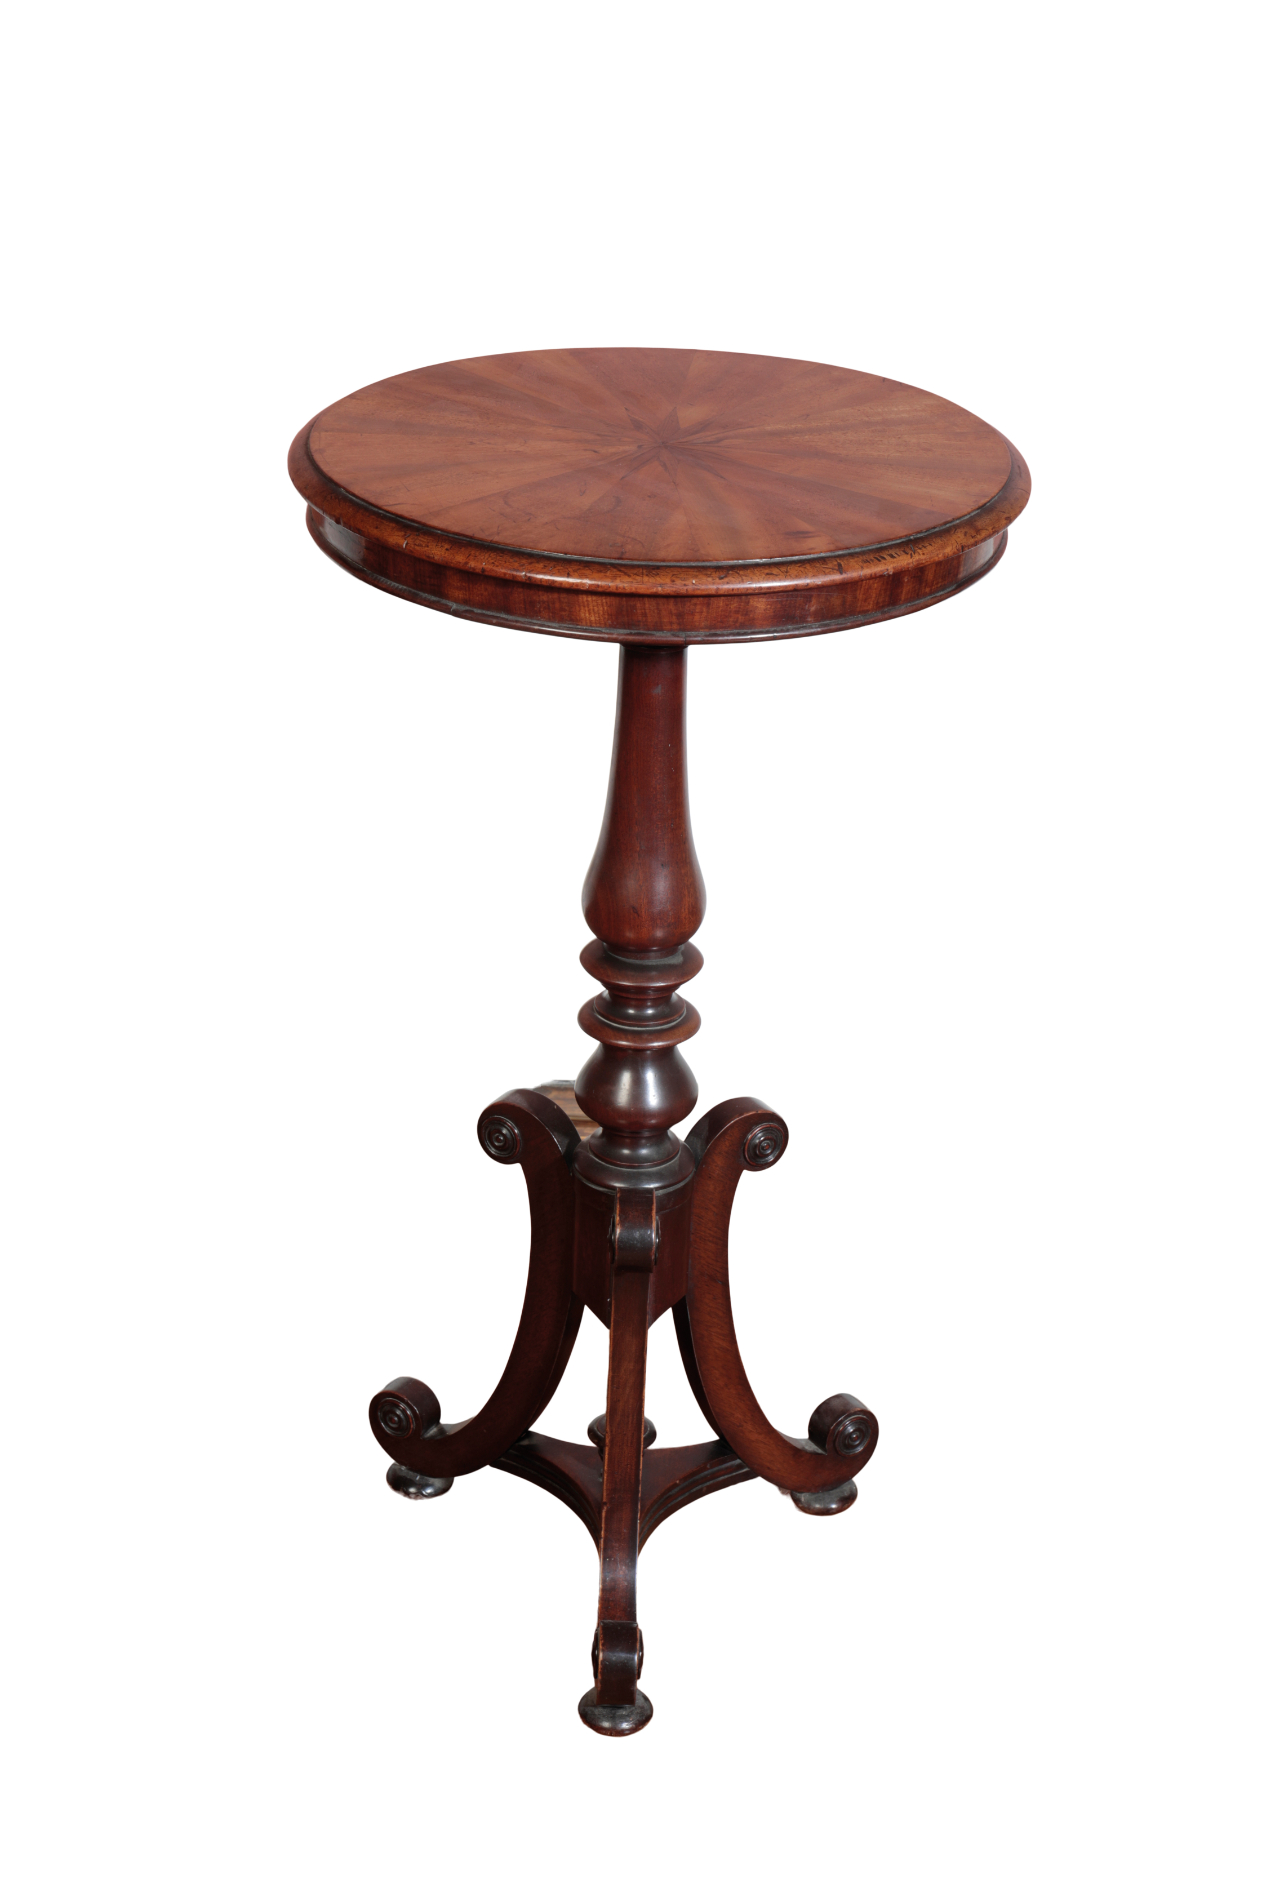 AN EARLY VICTORIAN WINE OR LAMP TABLE, - Image 2 of 2